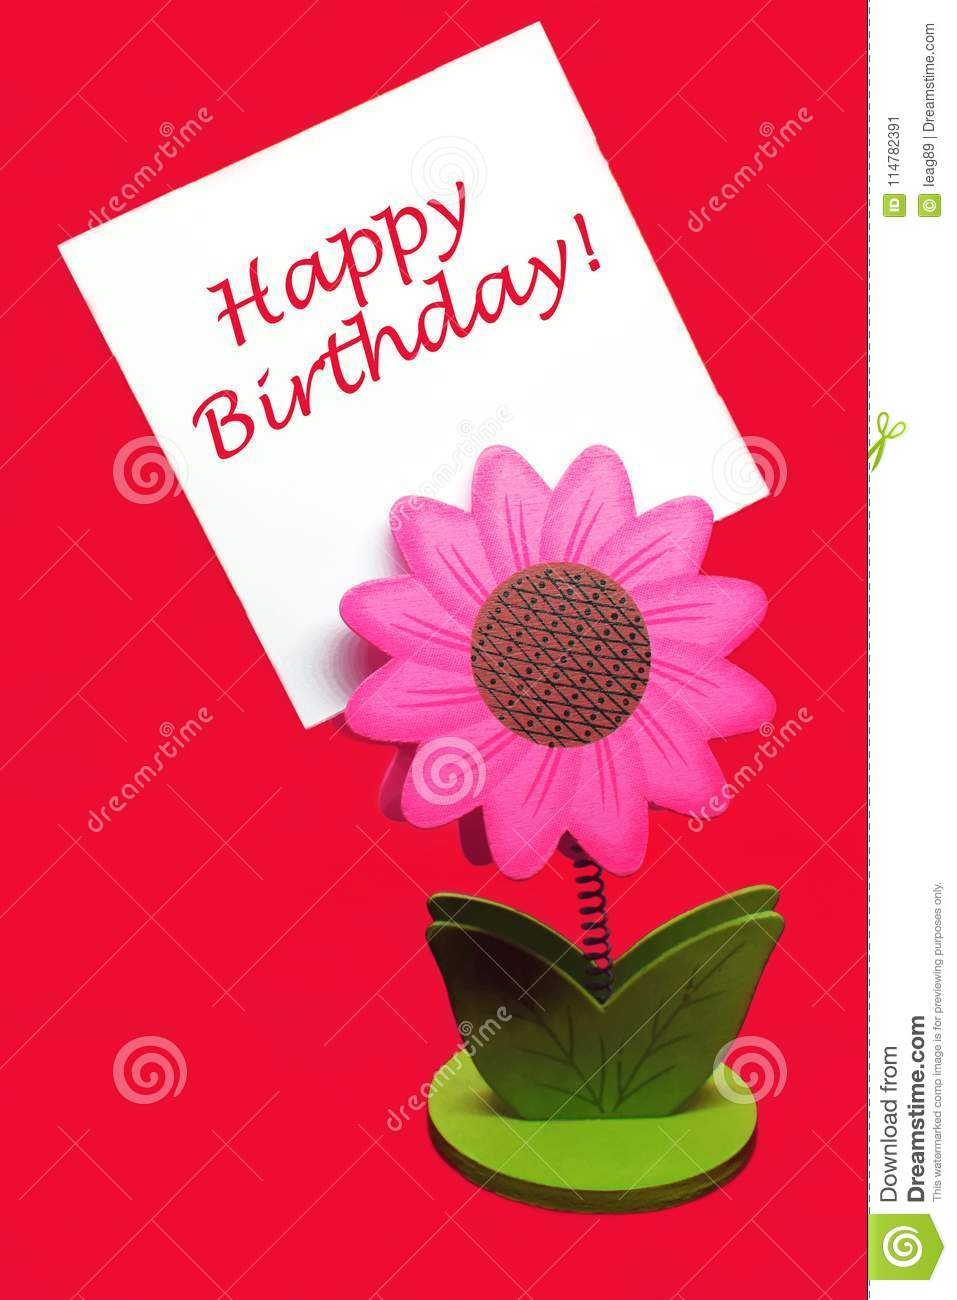 Happy Birthday Greetings Stock Image Image Of Hanging 114782391